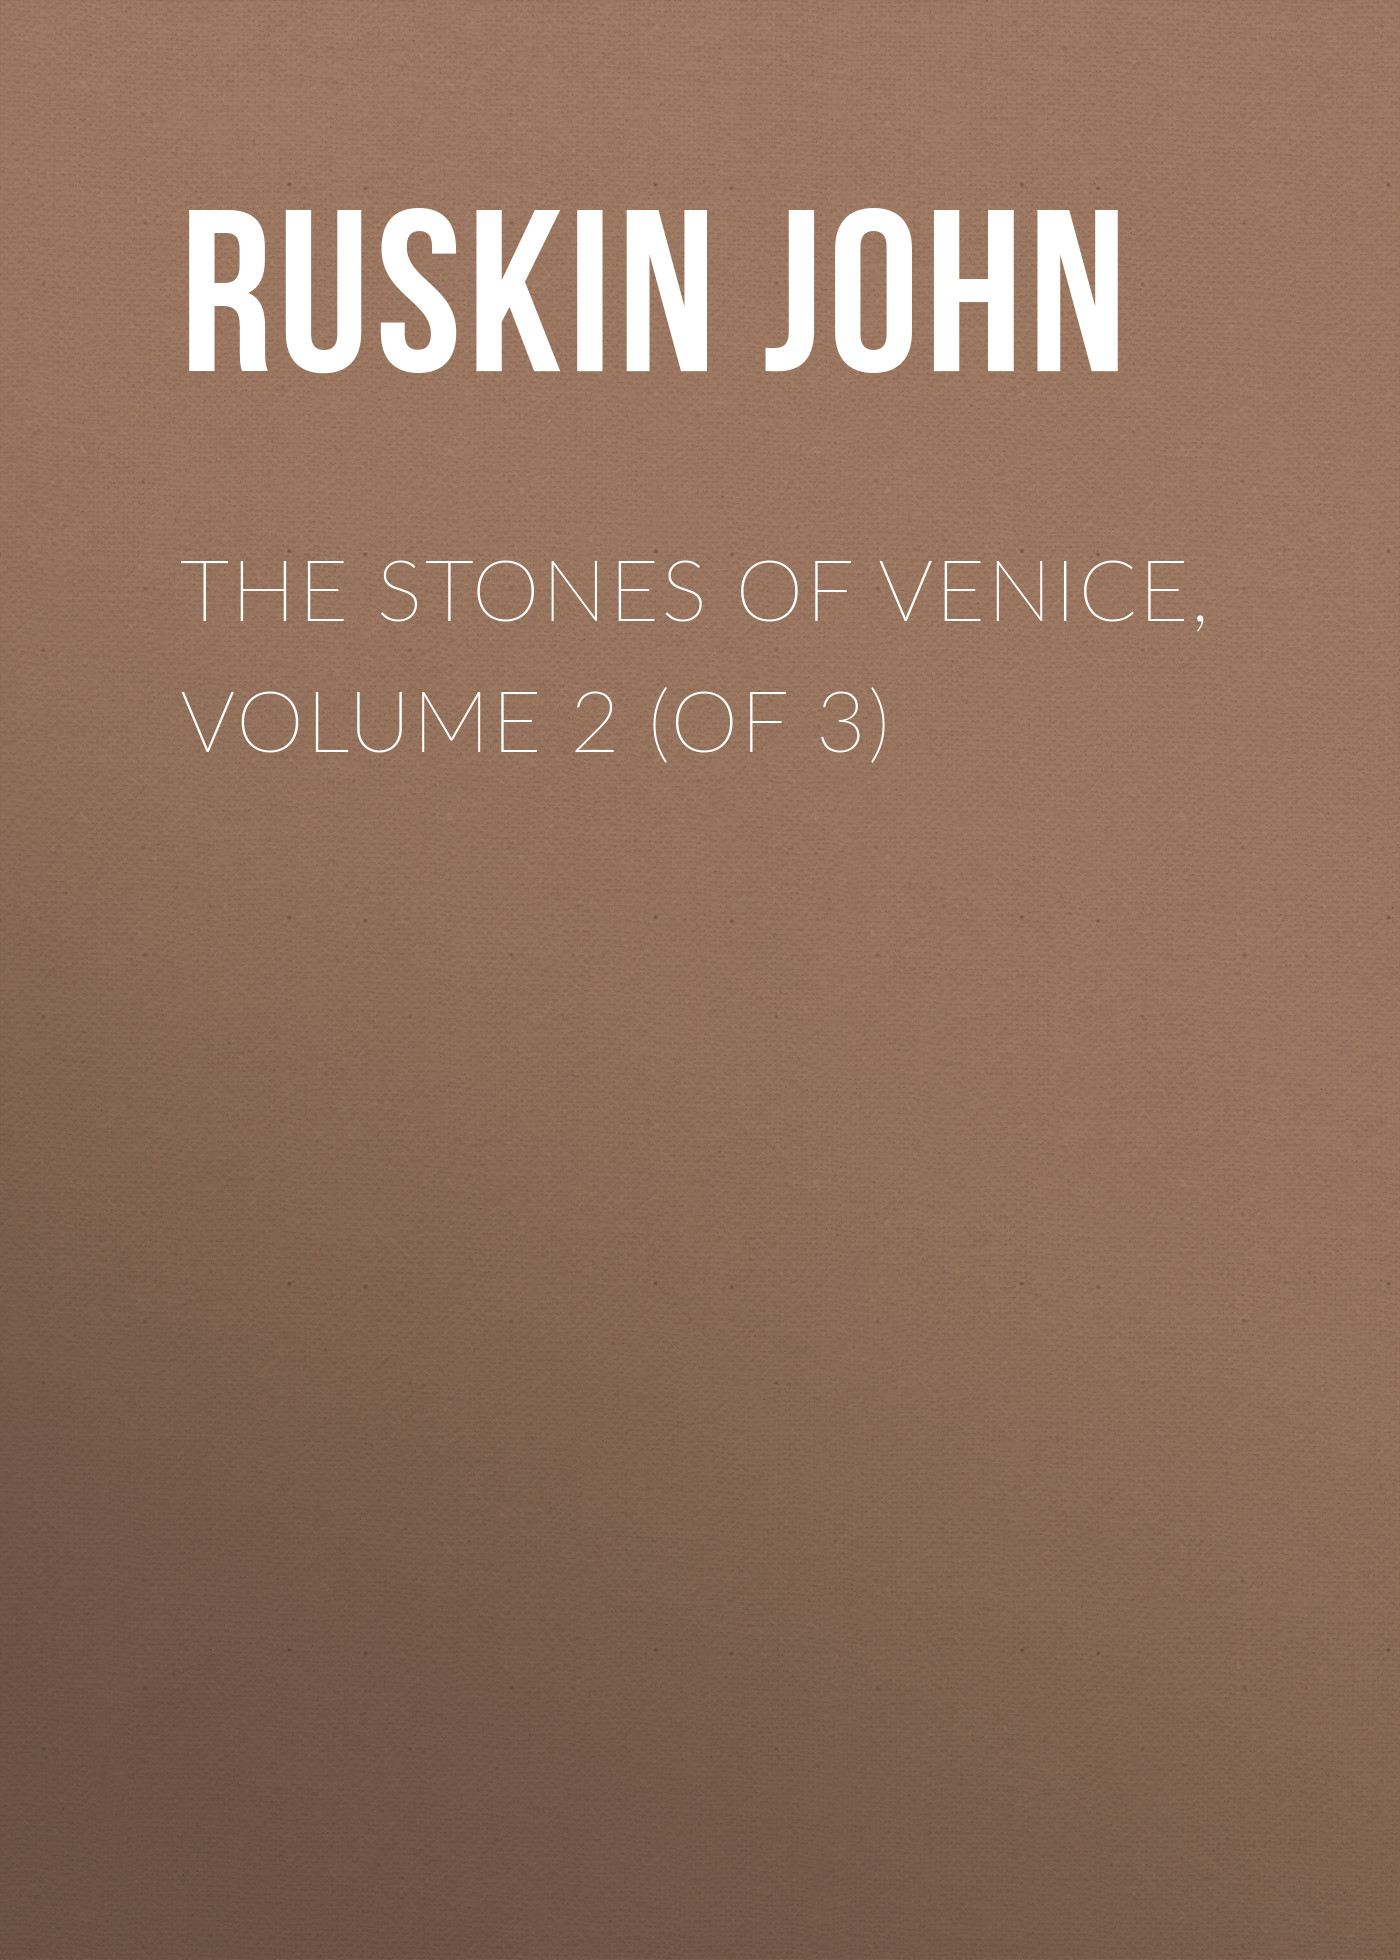 лучшая цена Ruskin John The Stones of Venice, Volume 2 (of 3)